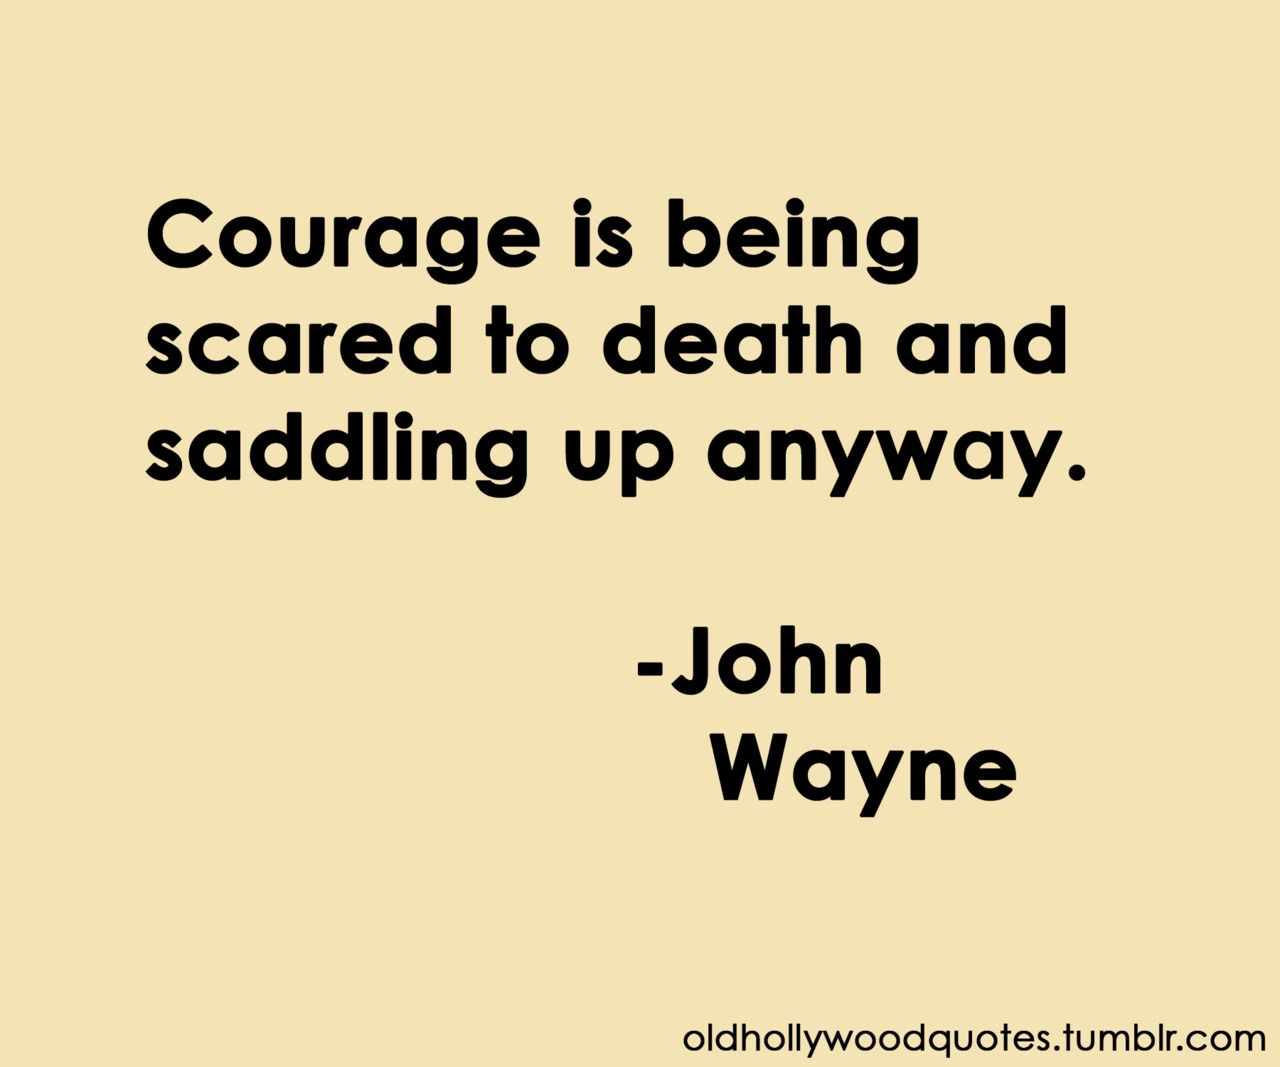 Quotes Courage A Doctor Gets The Green Light To Keep Being A Super Human And